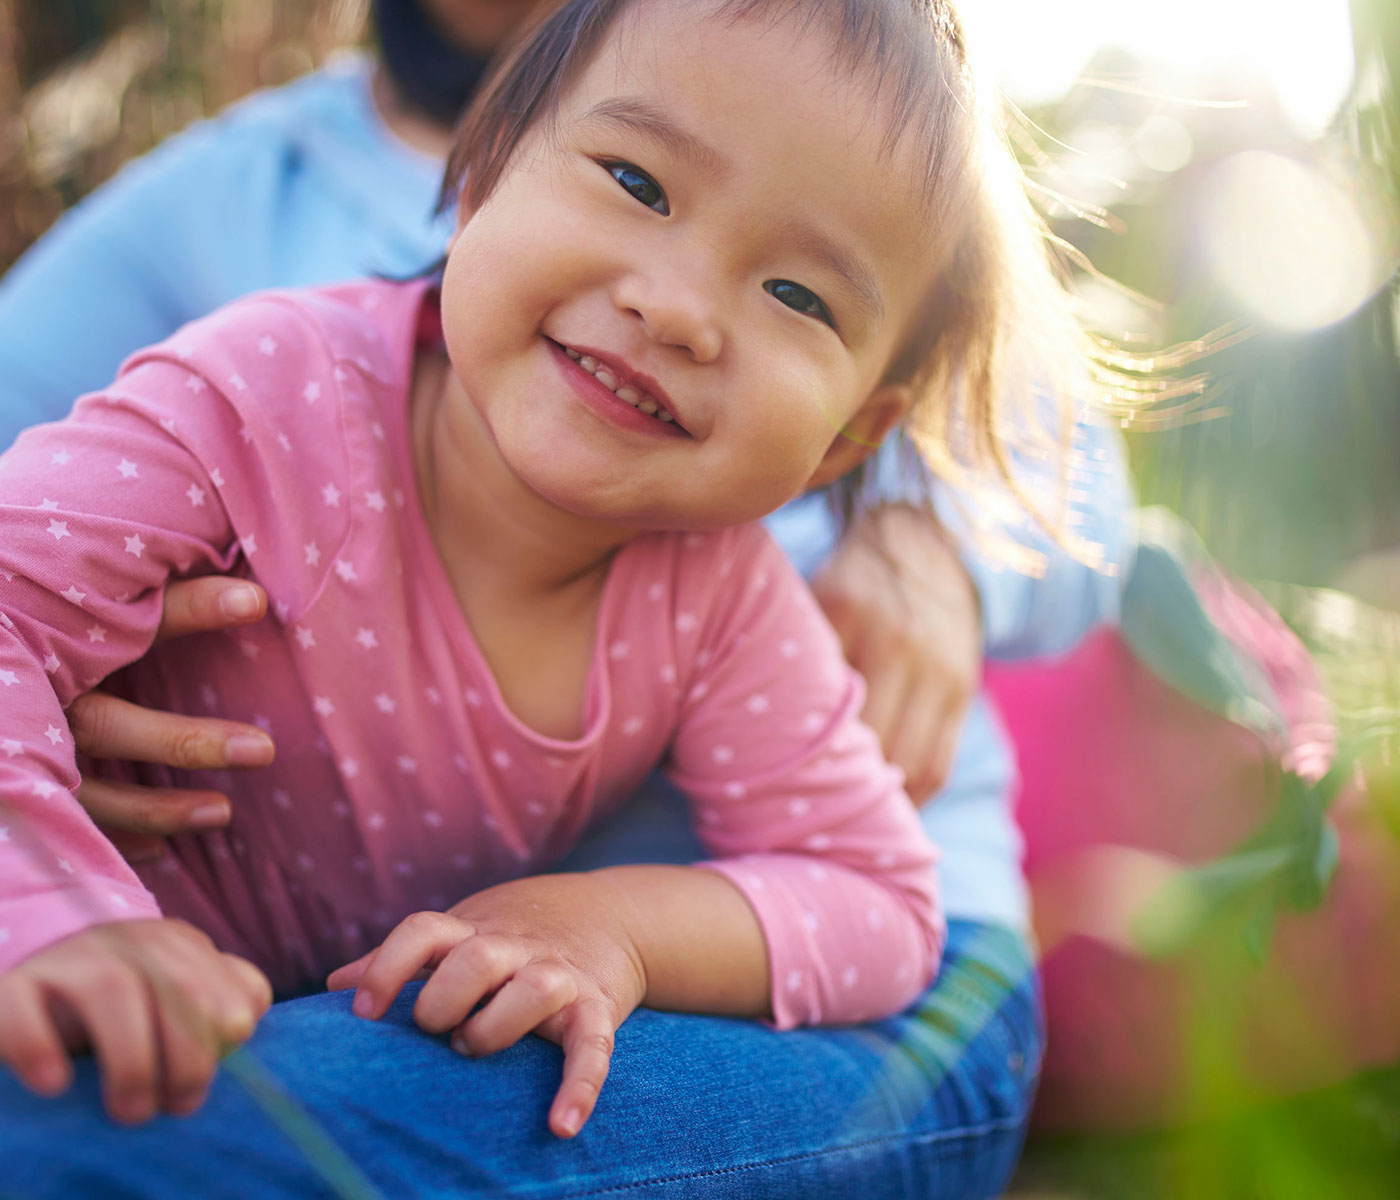 Child Smiling in Parent's Lap with Sun Shining Behind Them